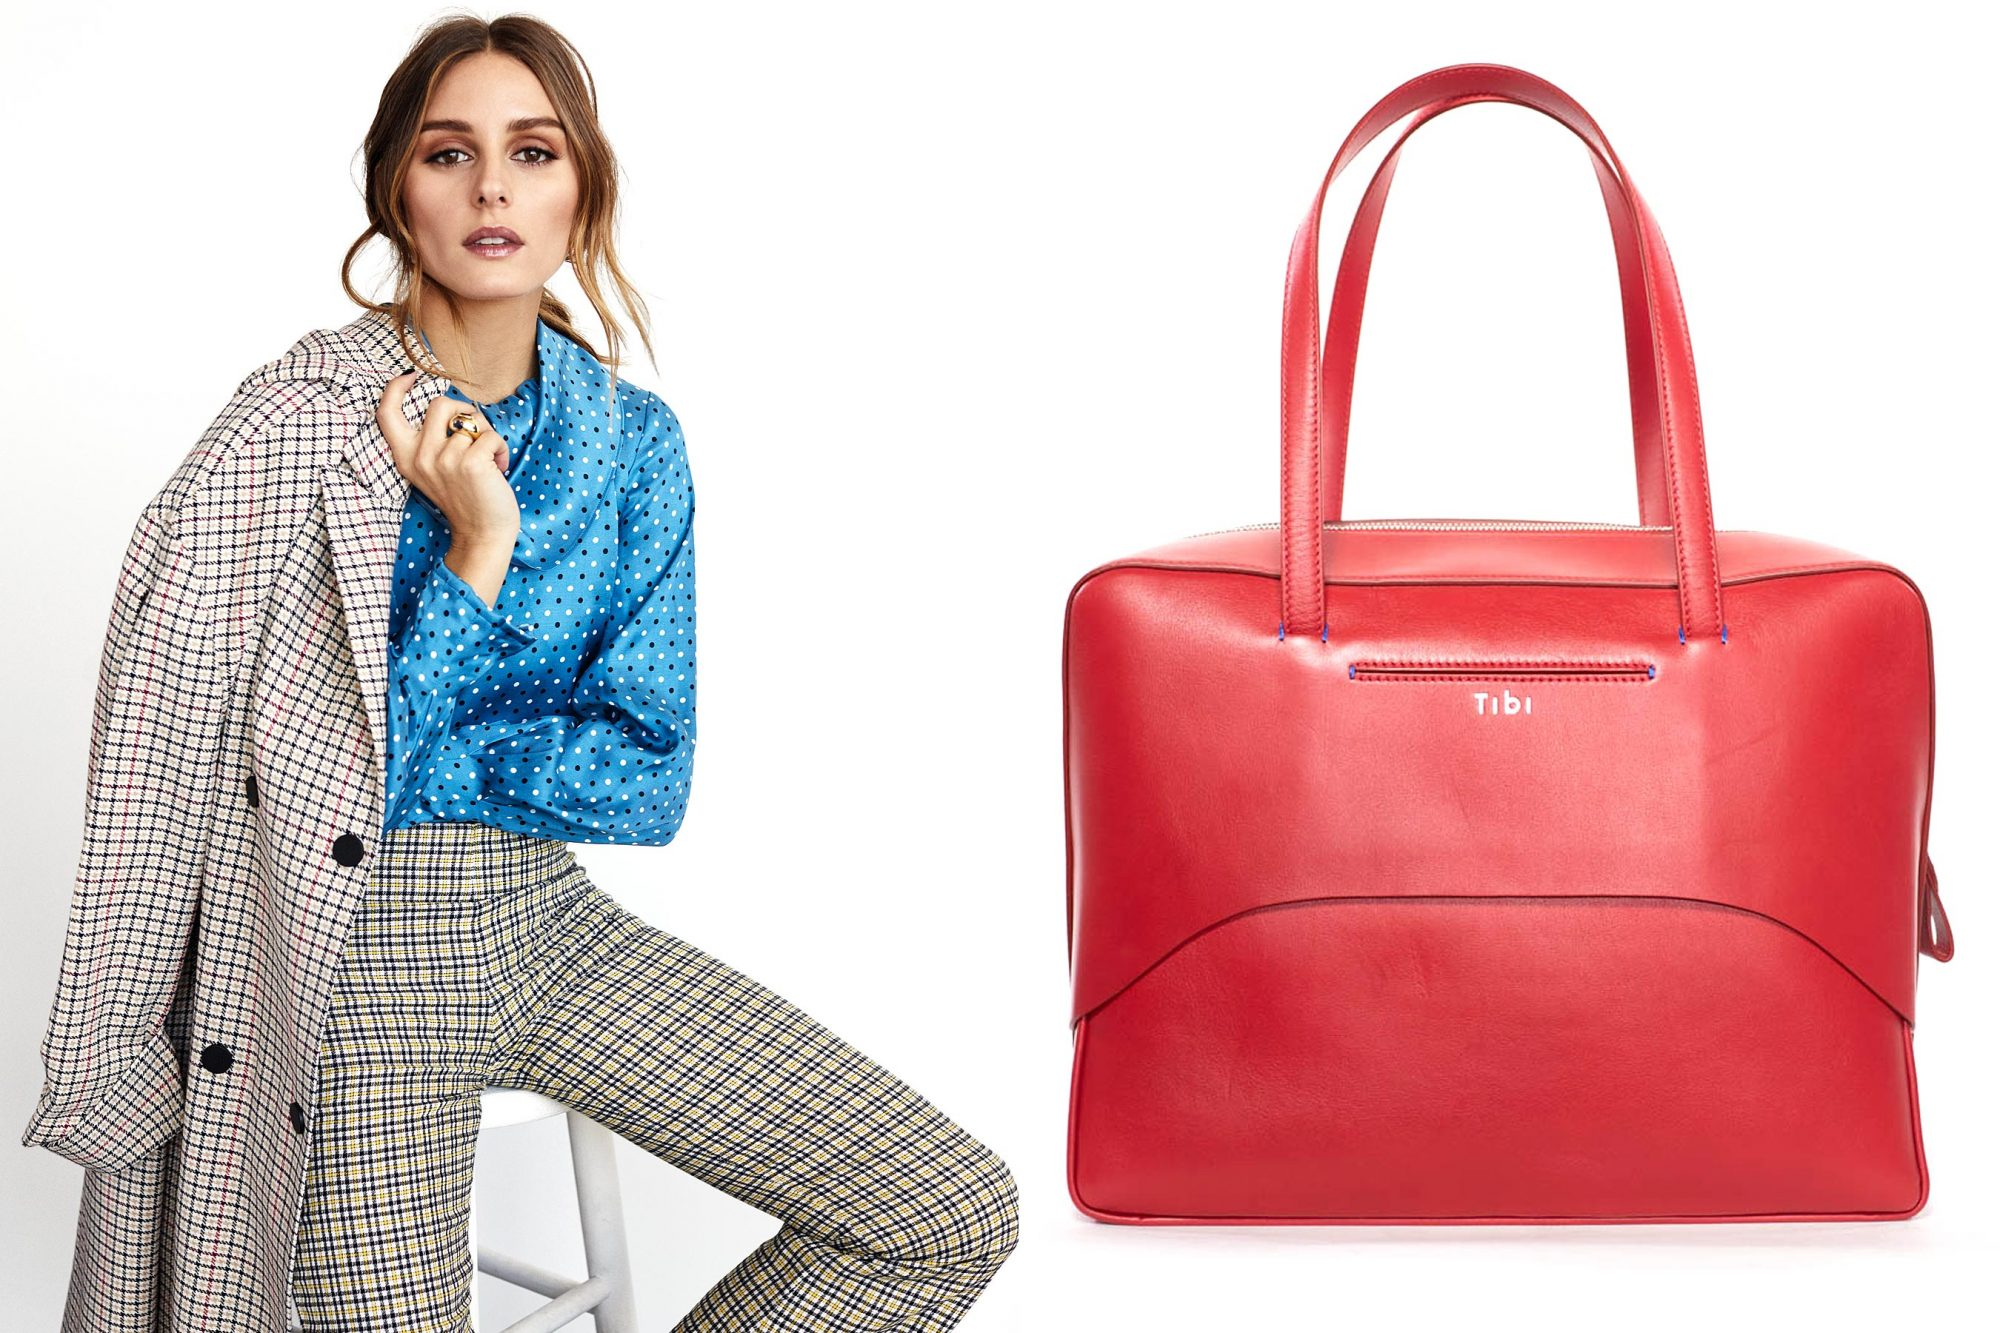 Olivia Palermo and red bag for dress for success